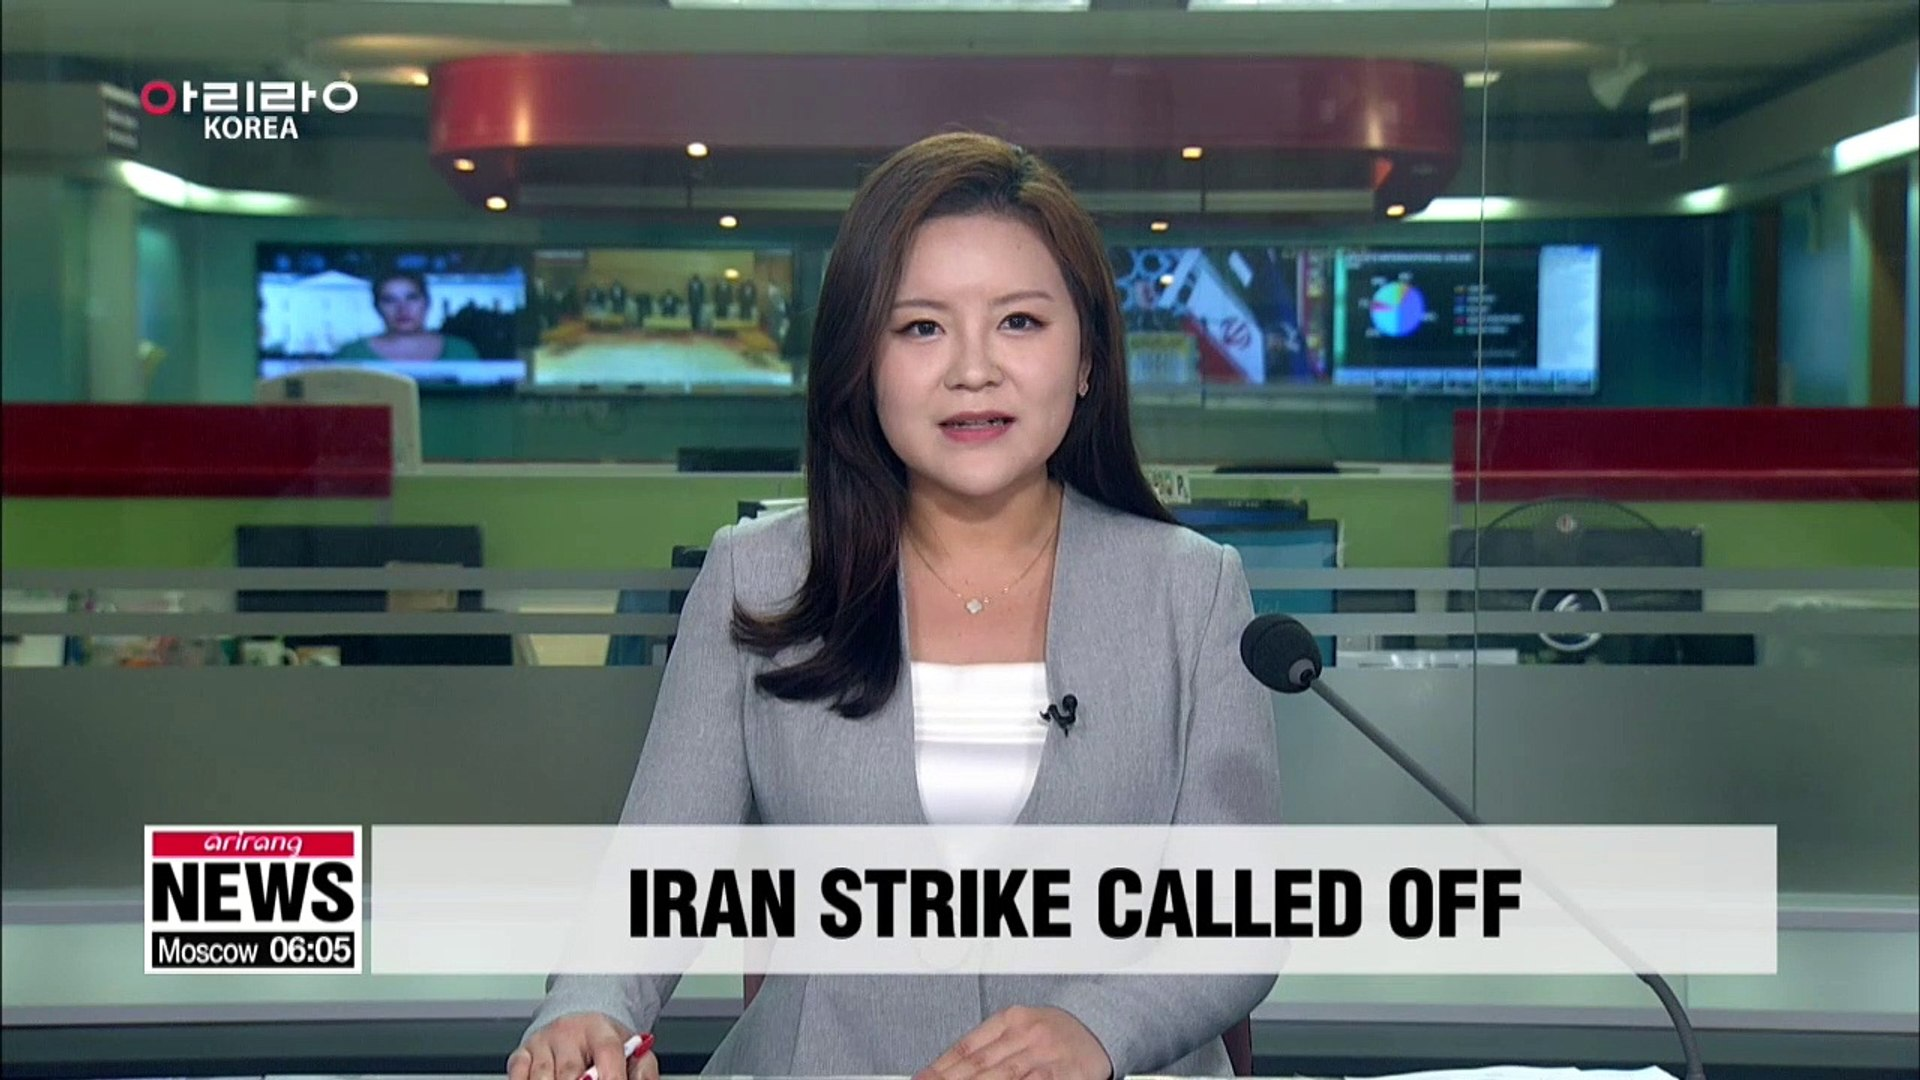 Trump abruptly calls off military strikes against Iran after hearing they could kill 150 people